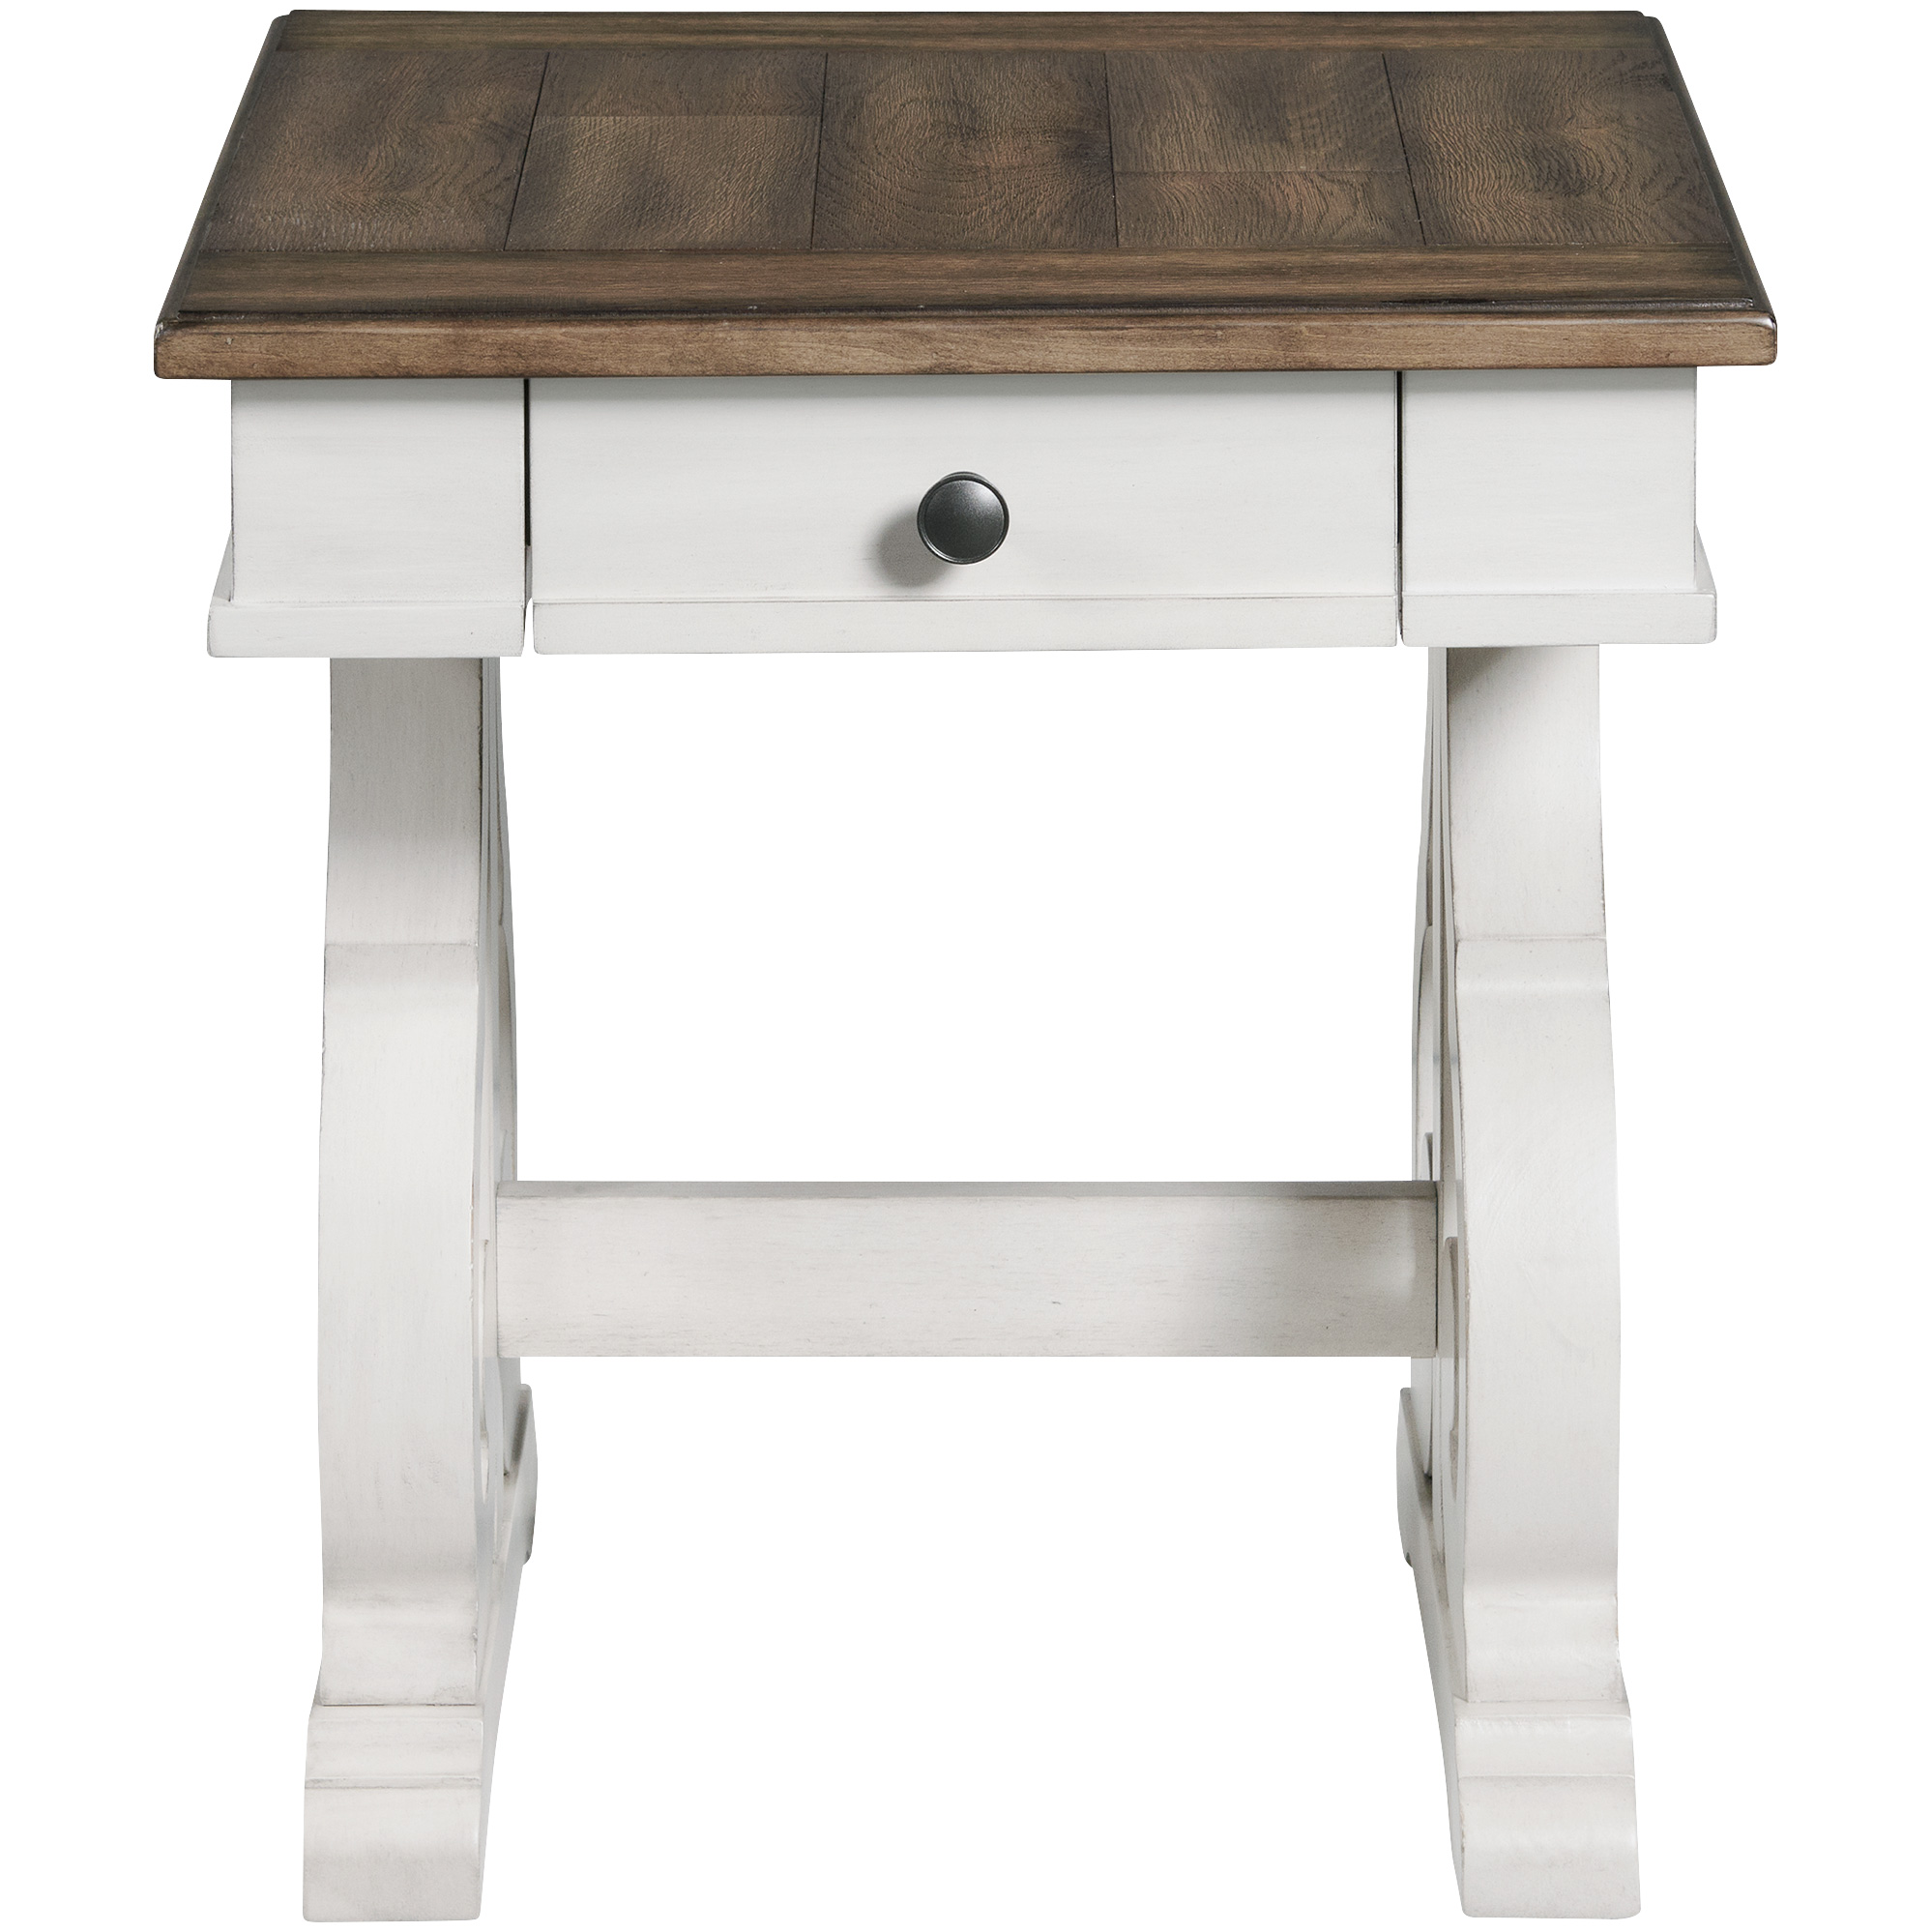 Intercon | Drake Rustic White and Stone End Table